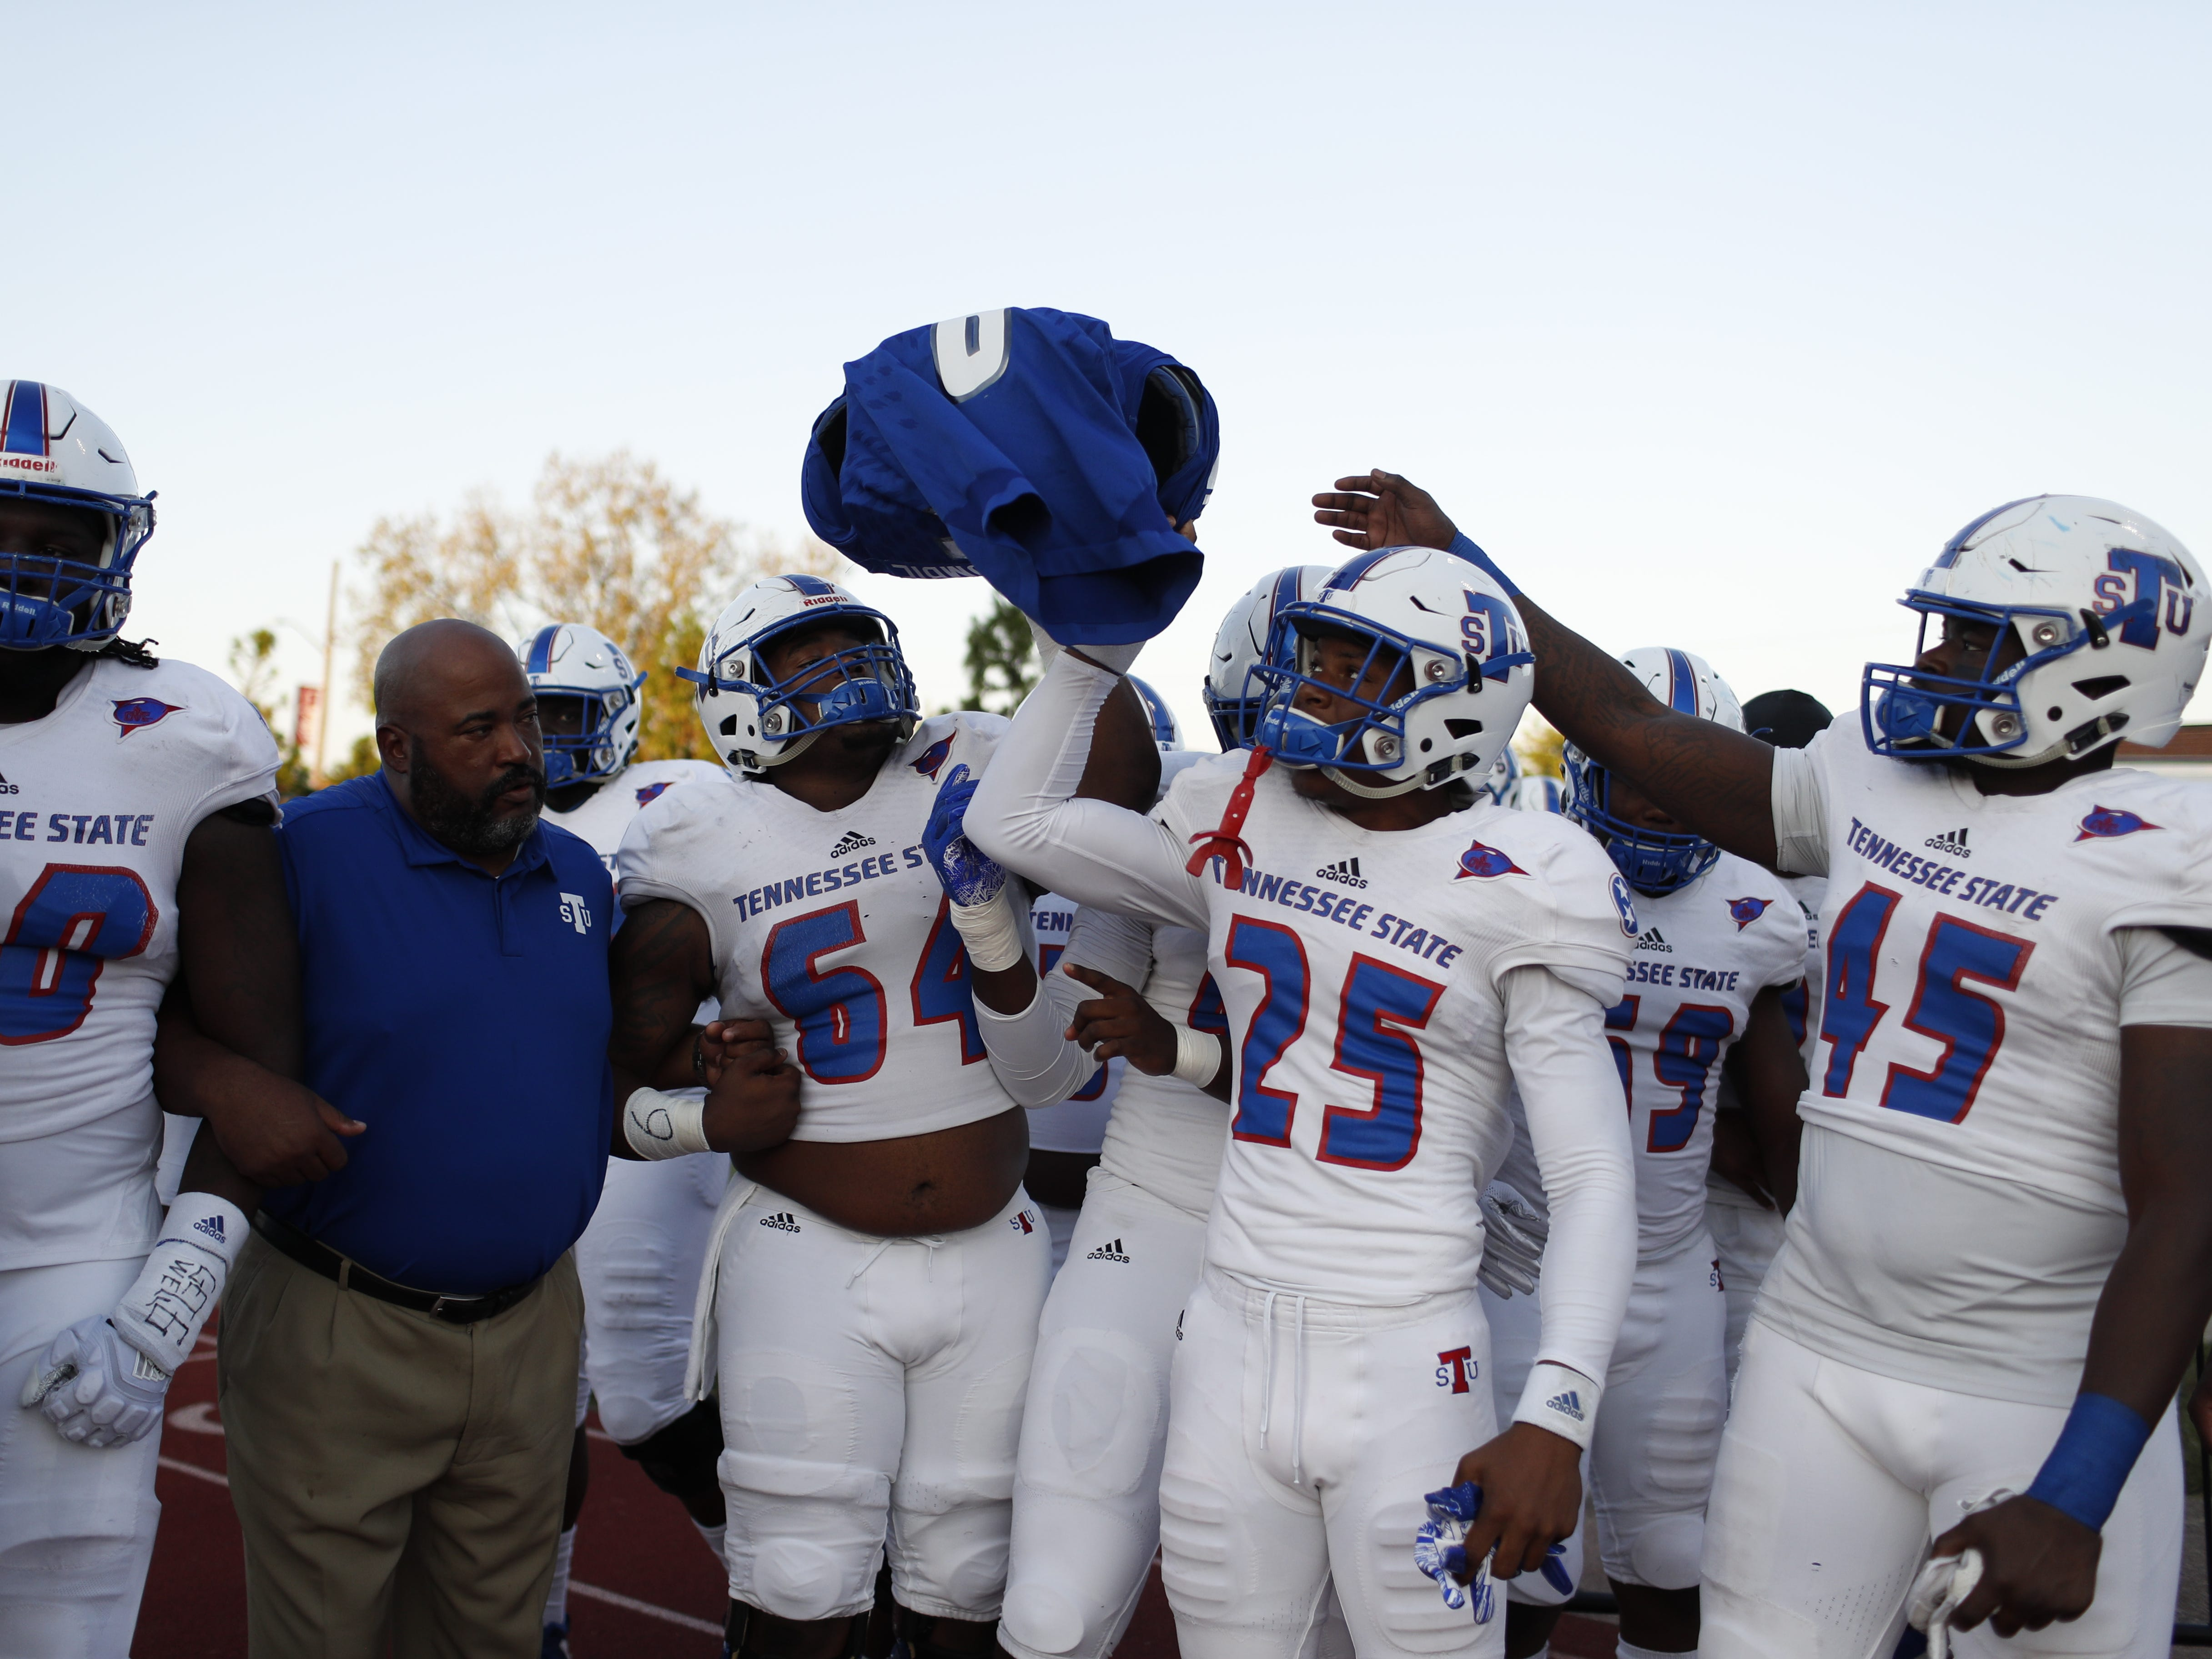 Tennessee State players hold the shoulder pads and jersey of Christion Abercrombie before the Tigers' game at Austin Peay on Saturday, October 6, 2018.